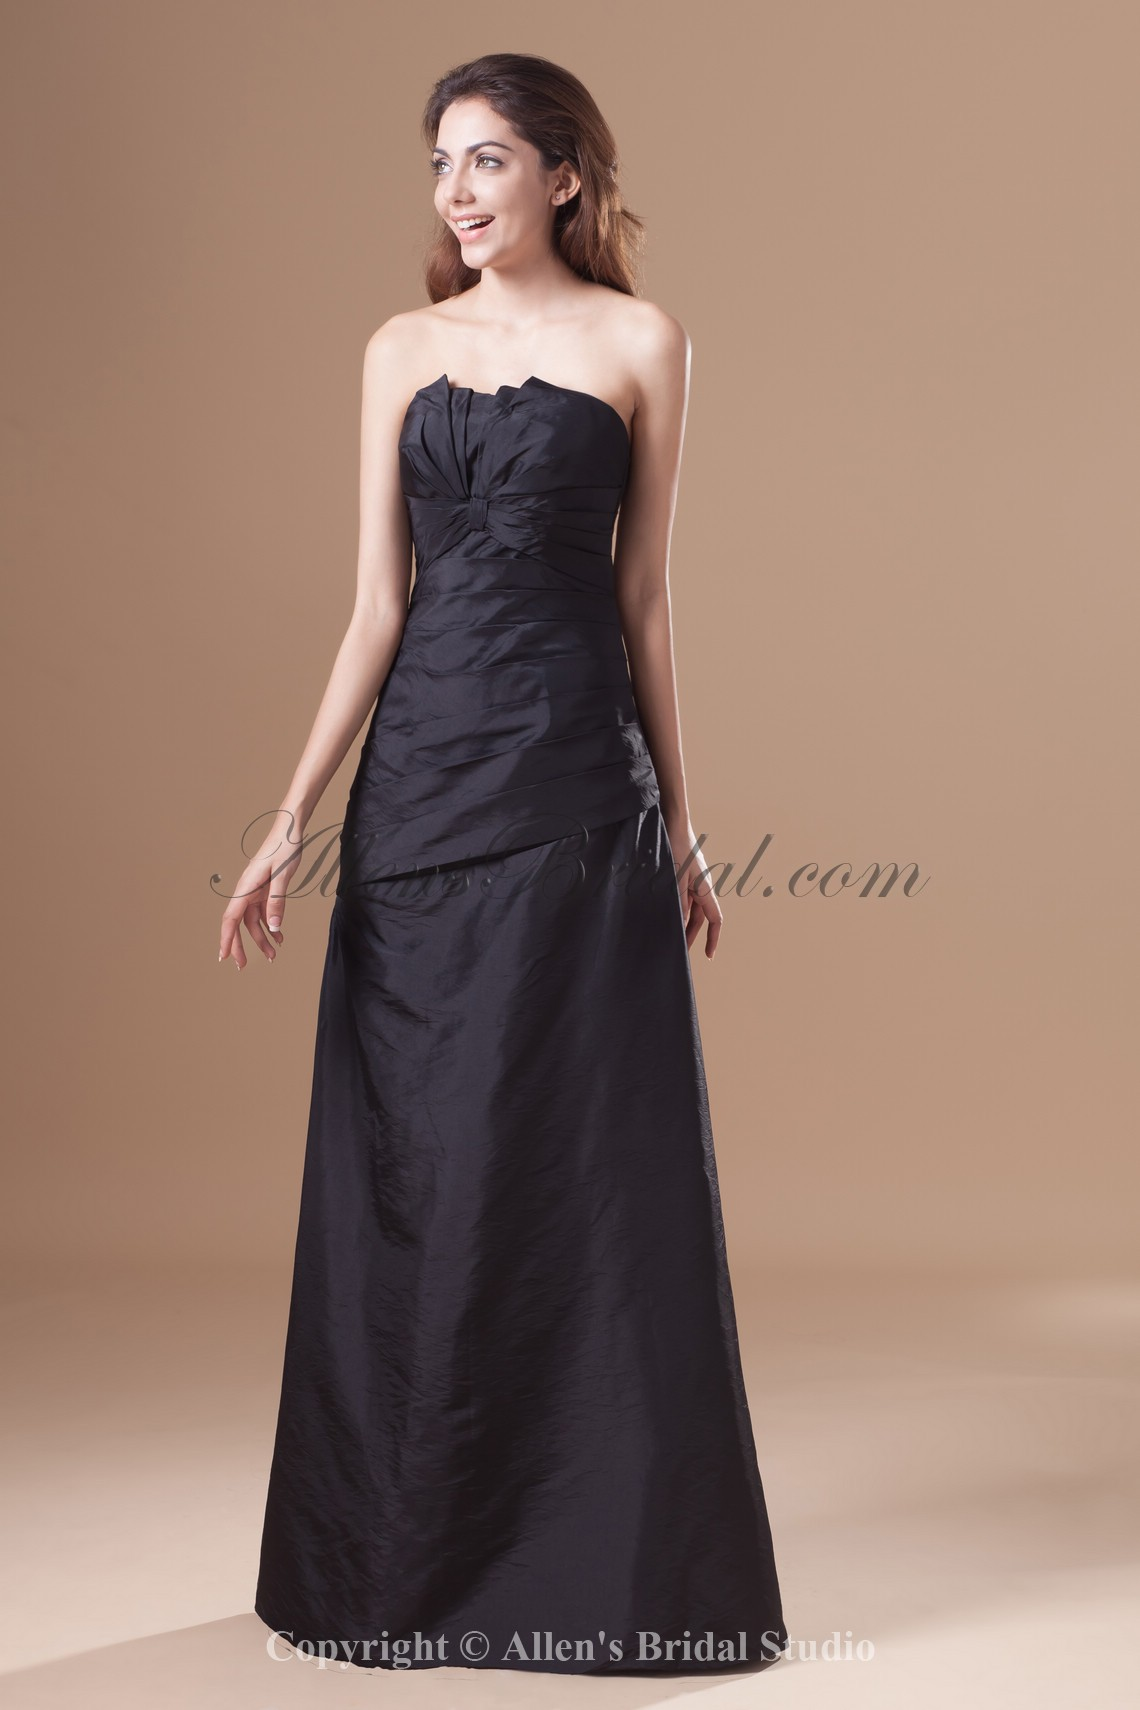 /592-4744/taffeta-scallop-neckline-floor-length-a-line-directionally-ruched-prom-dress.jpg